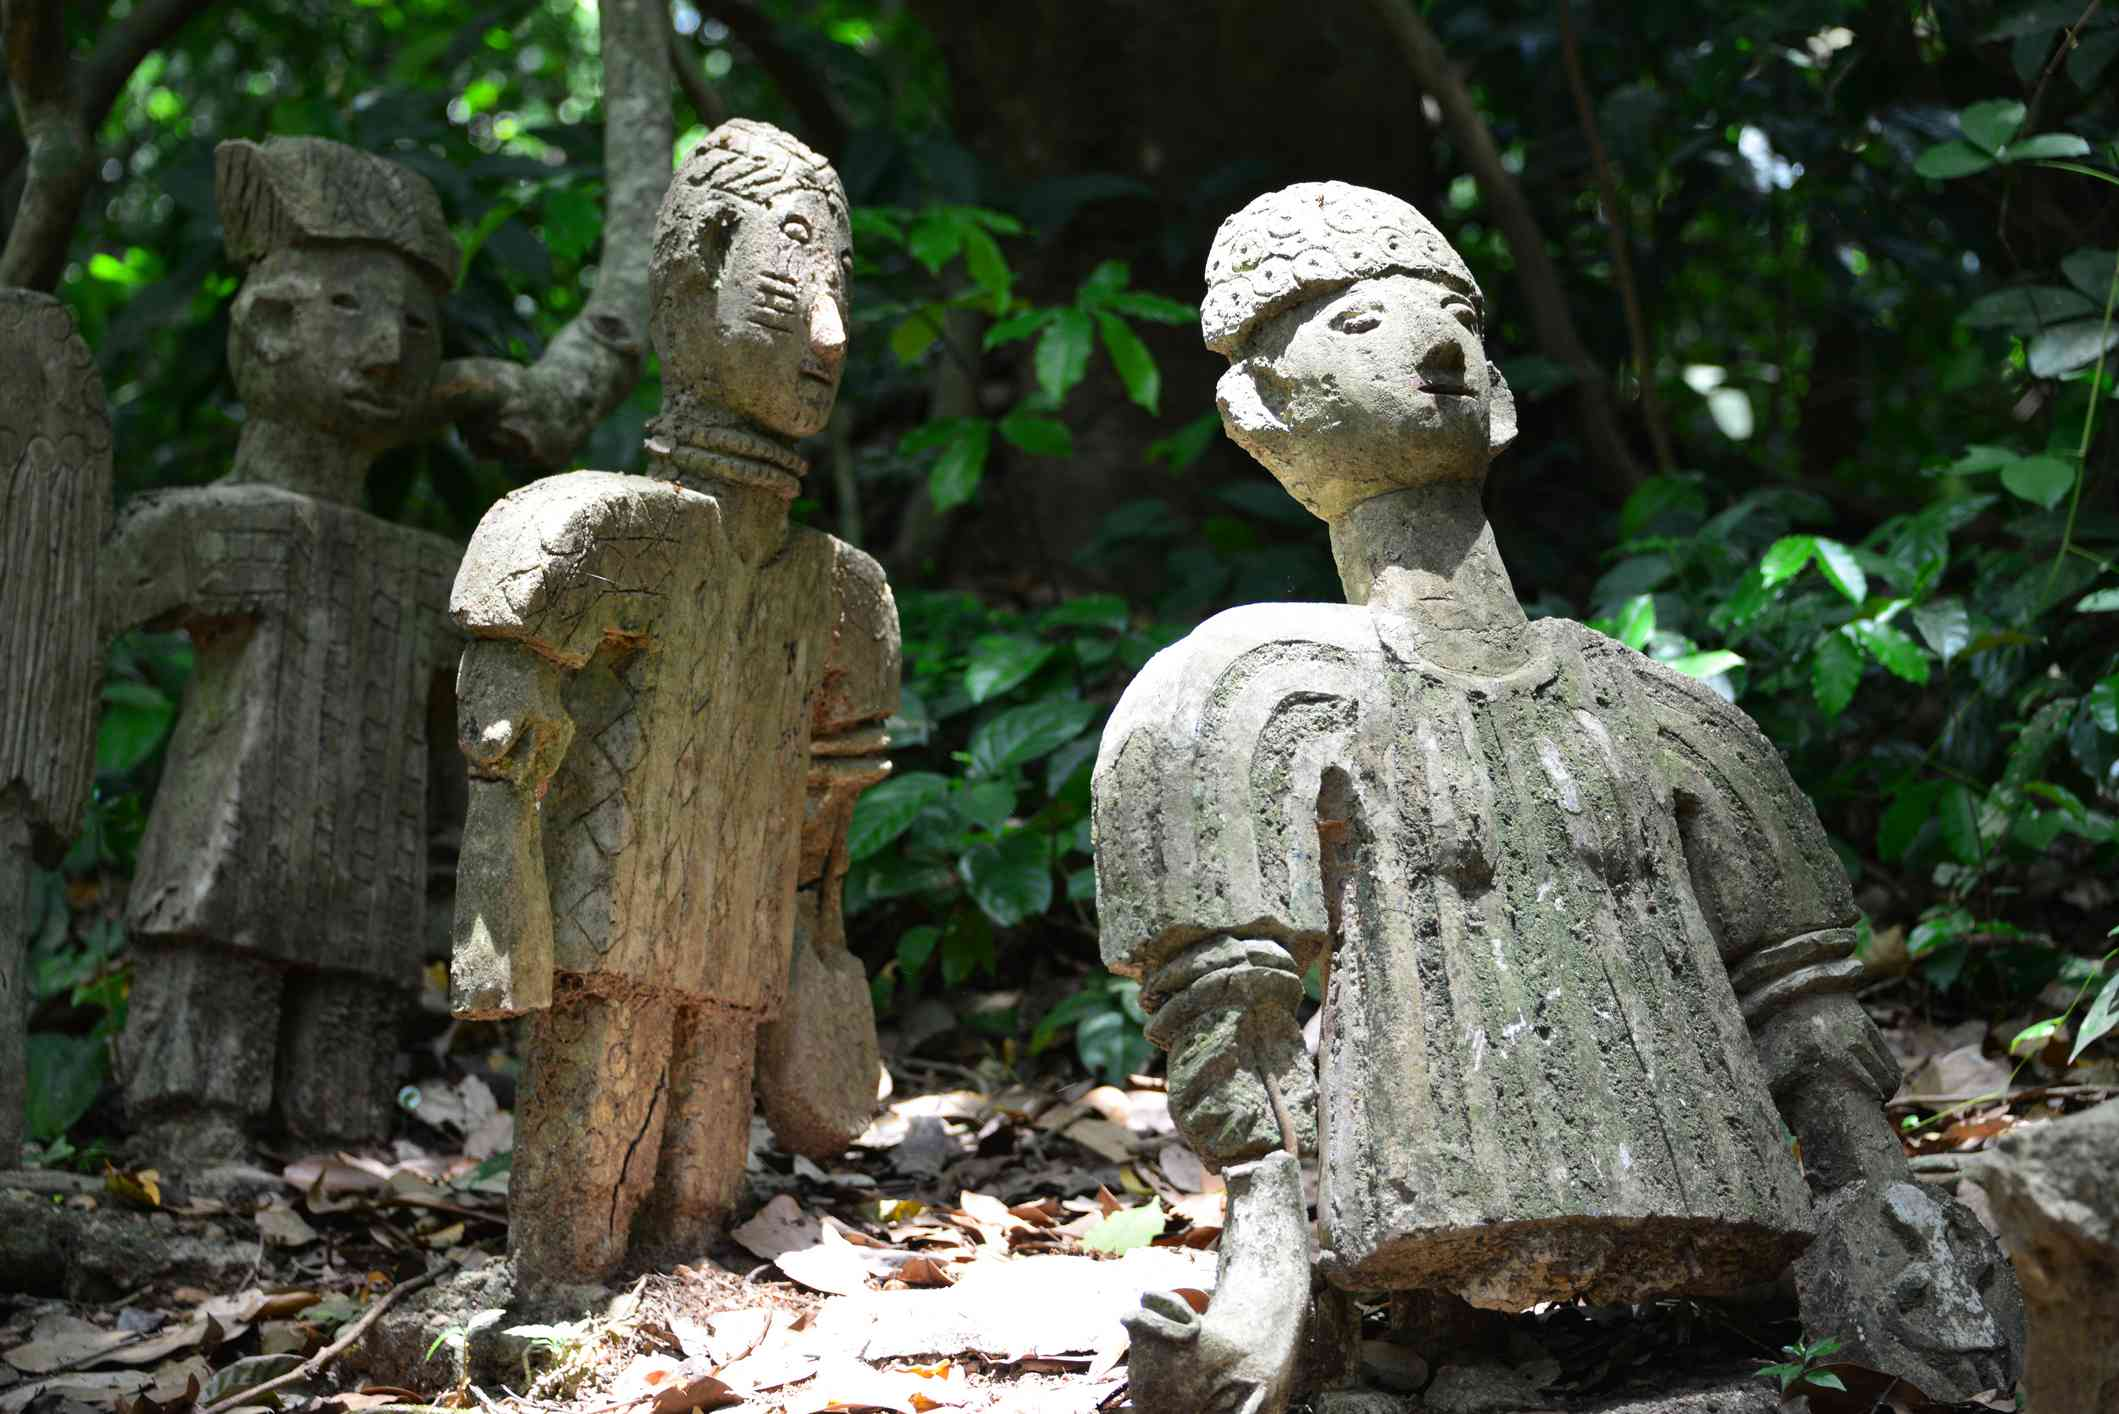 Old religious figures in the forest - Osun-Osogbo Sacred Grove (UNESCO World Heritage), Osogbo, Nigeria